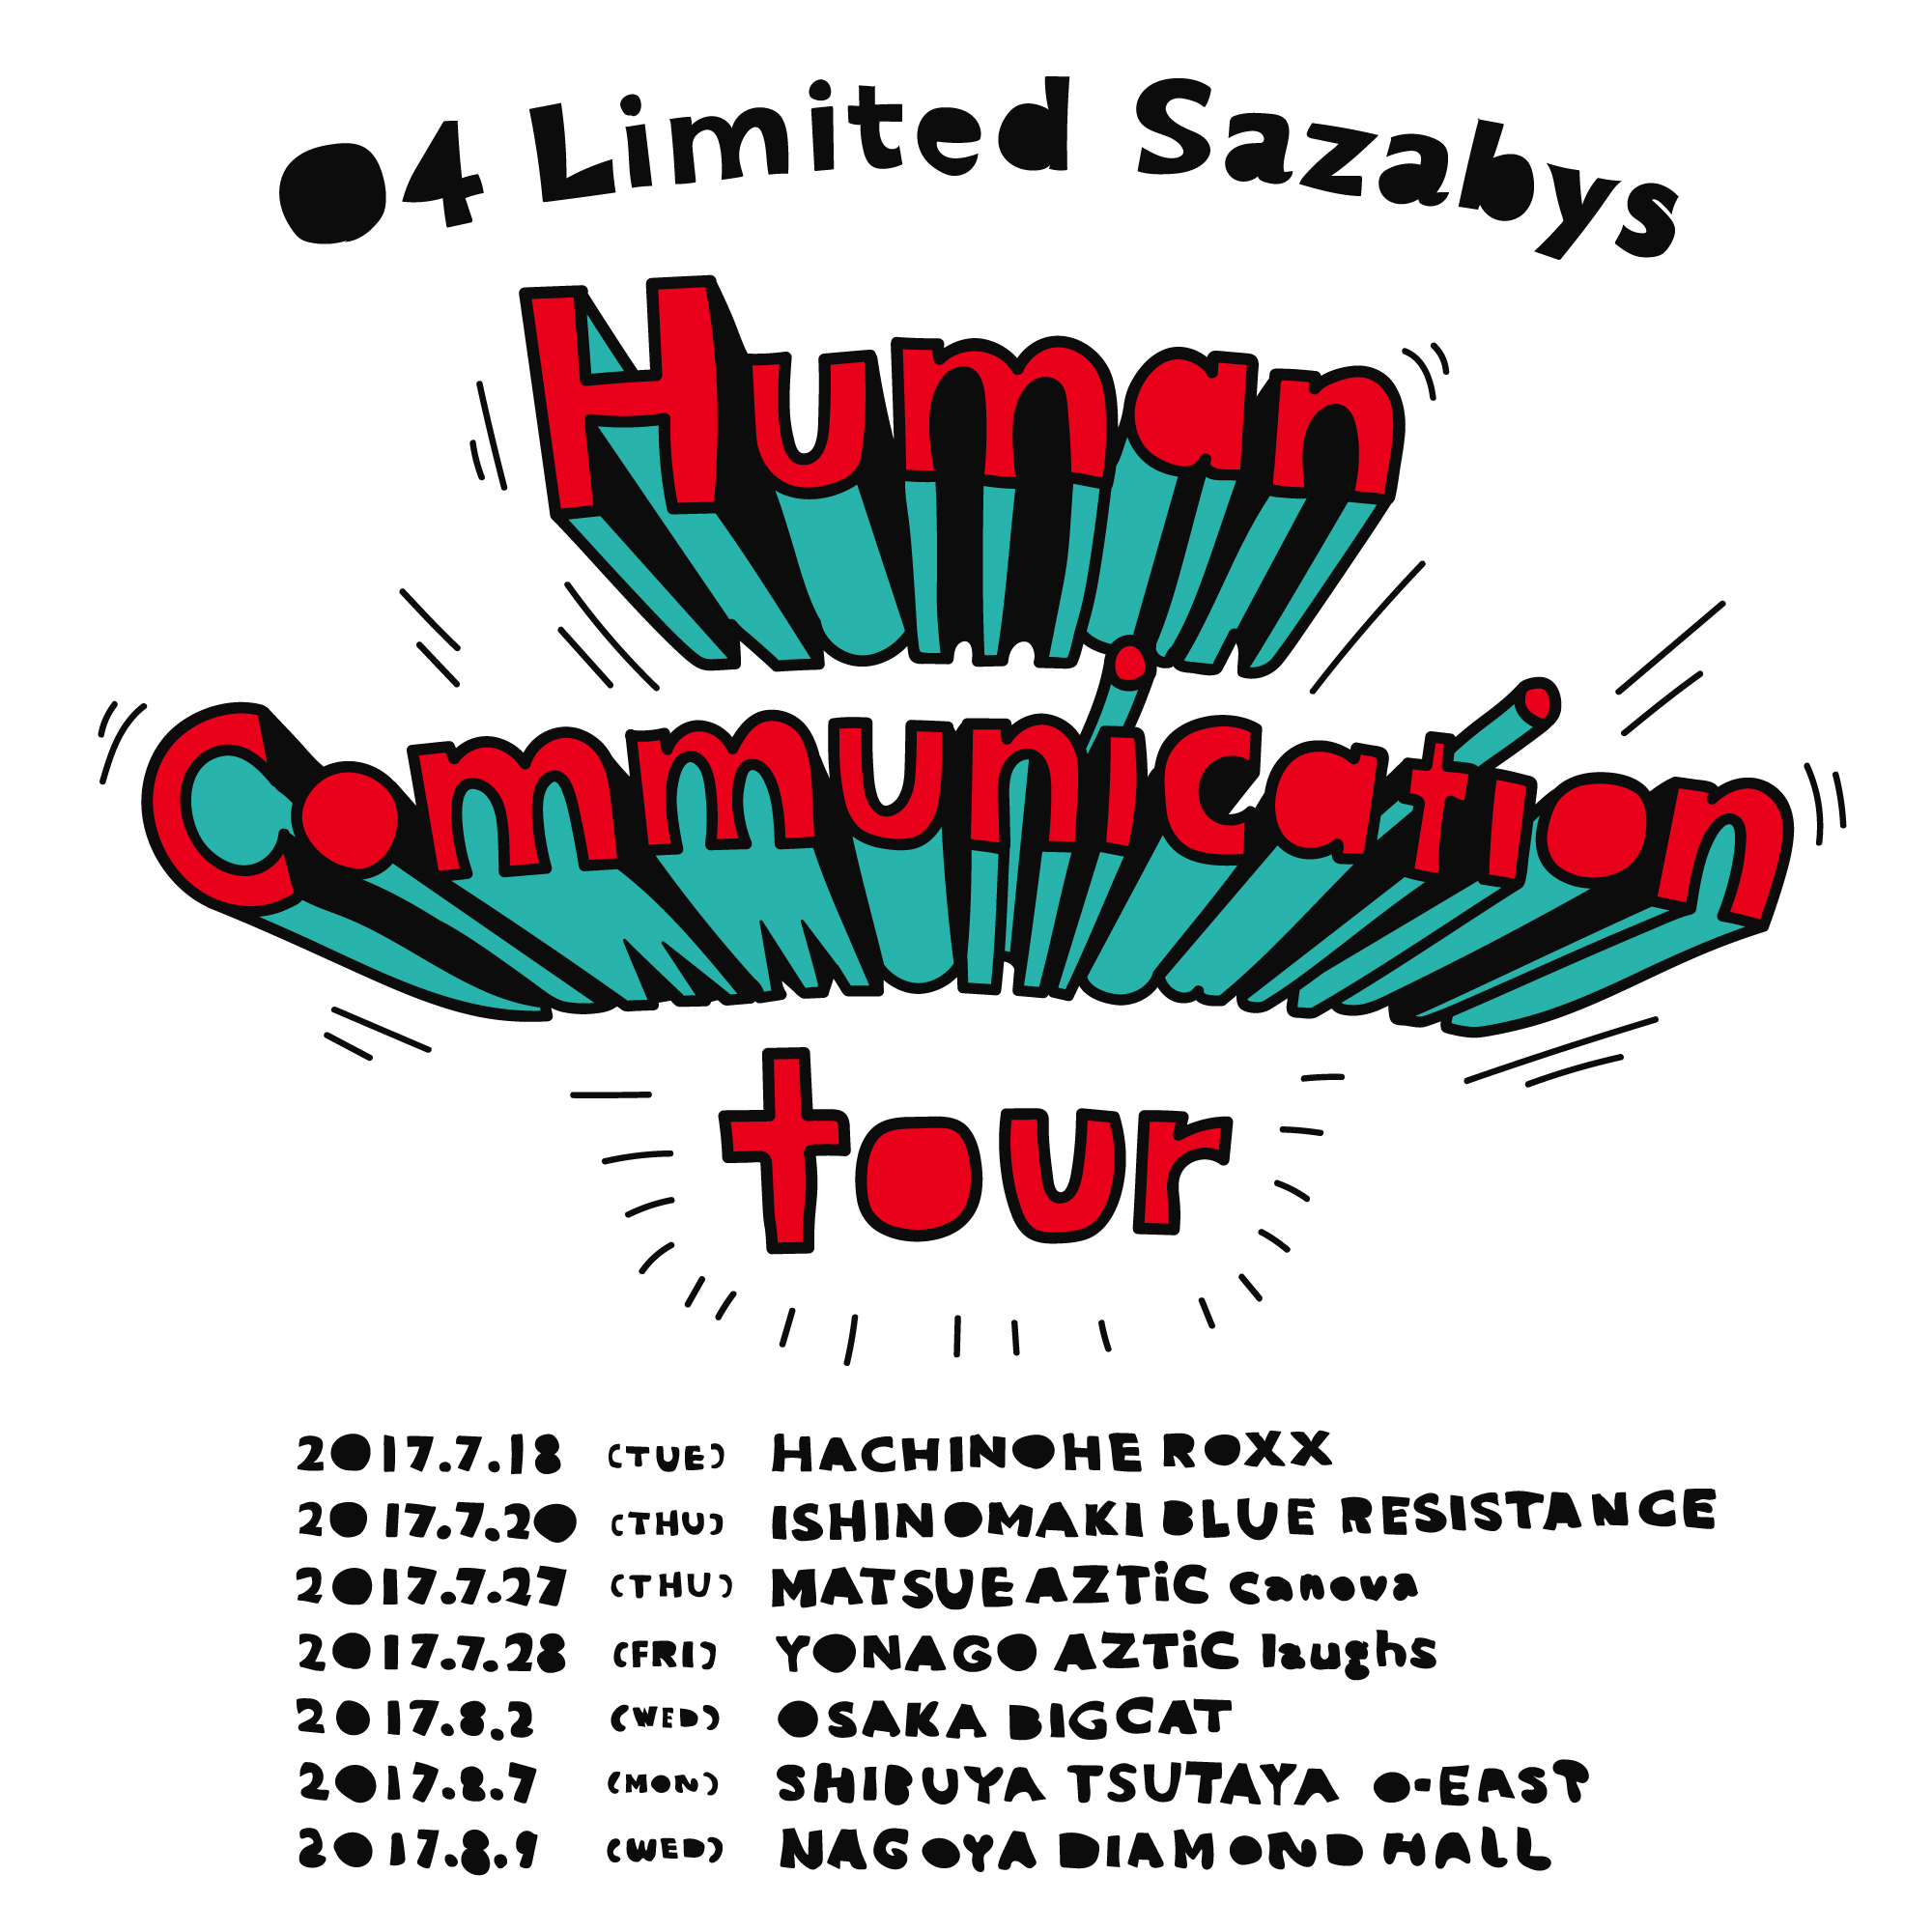 04 Limited Sazabys presents「Human Communication tour」